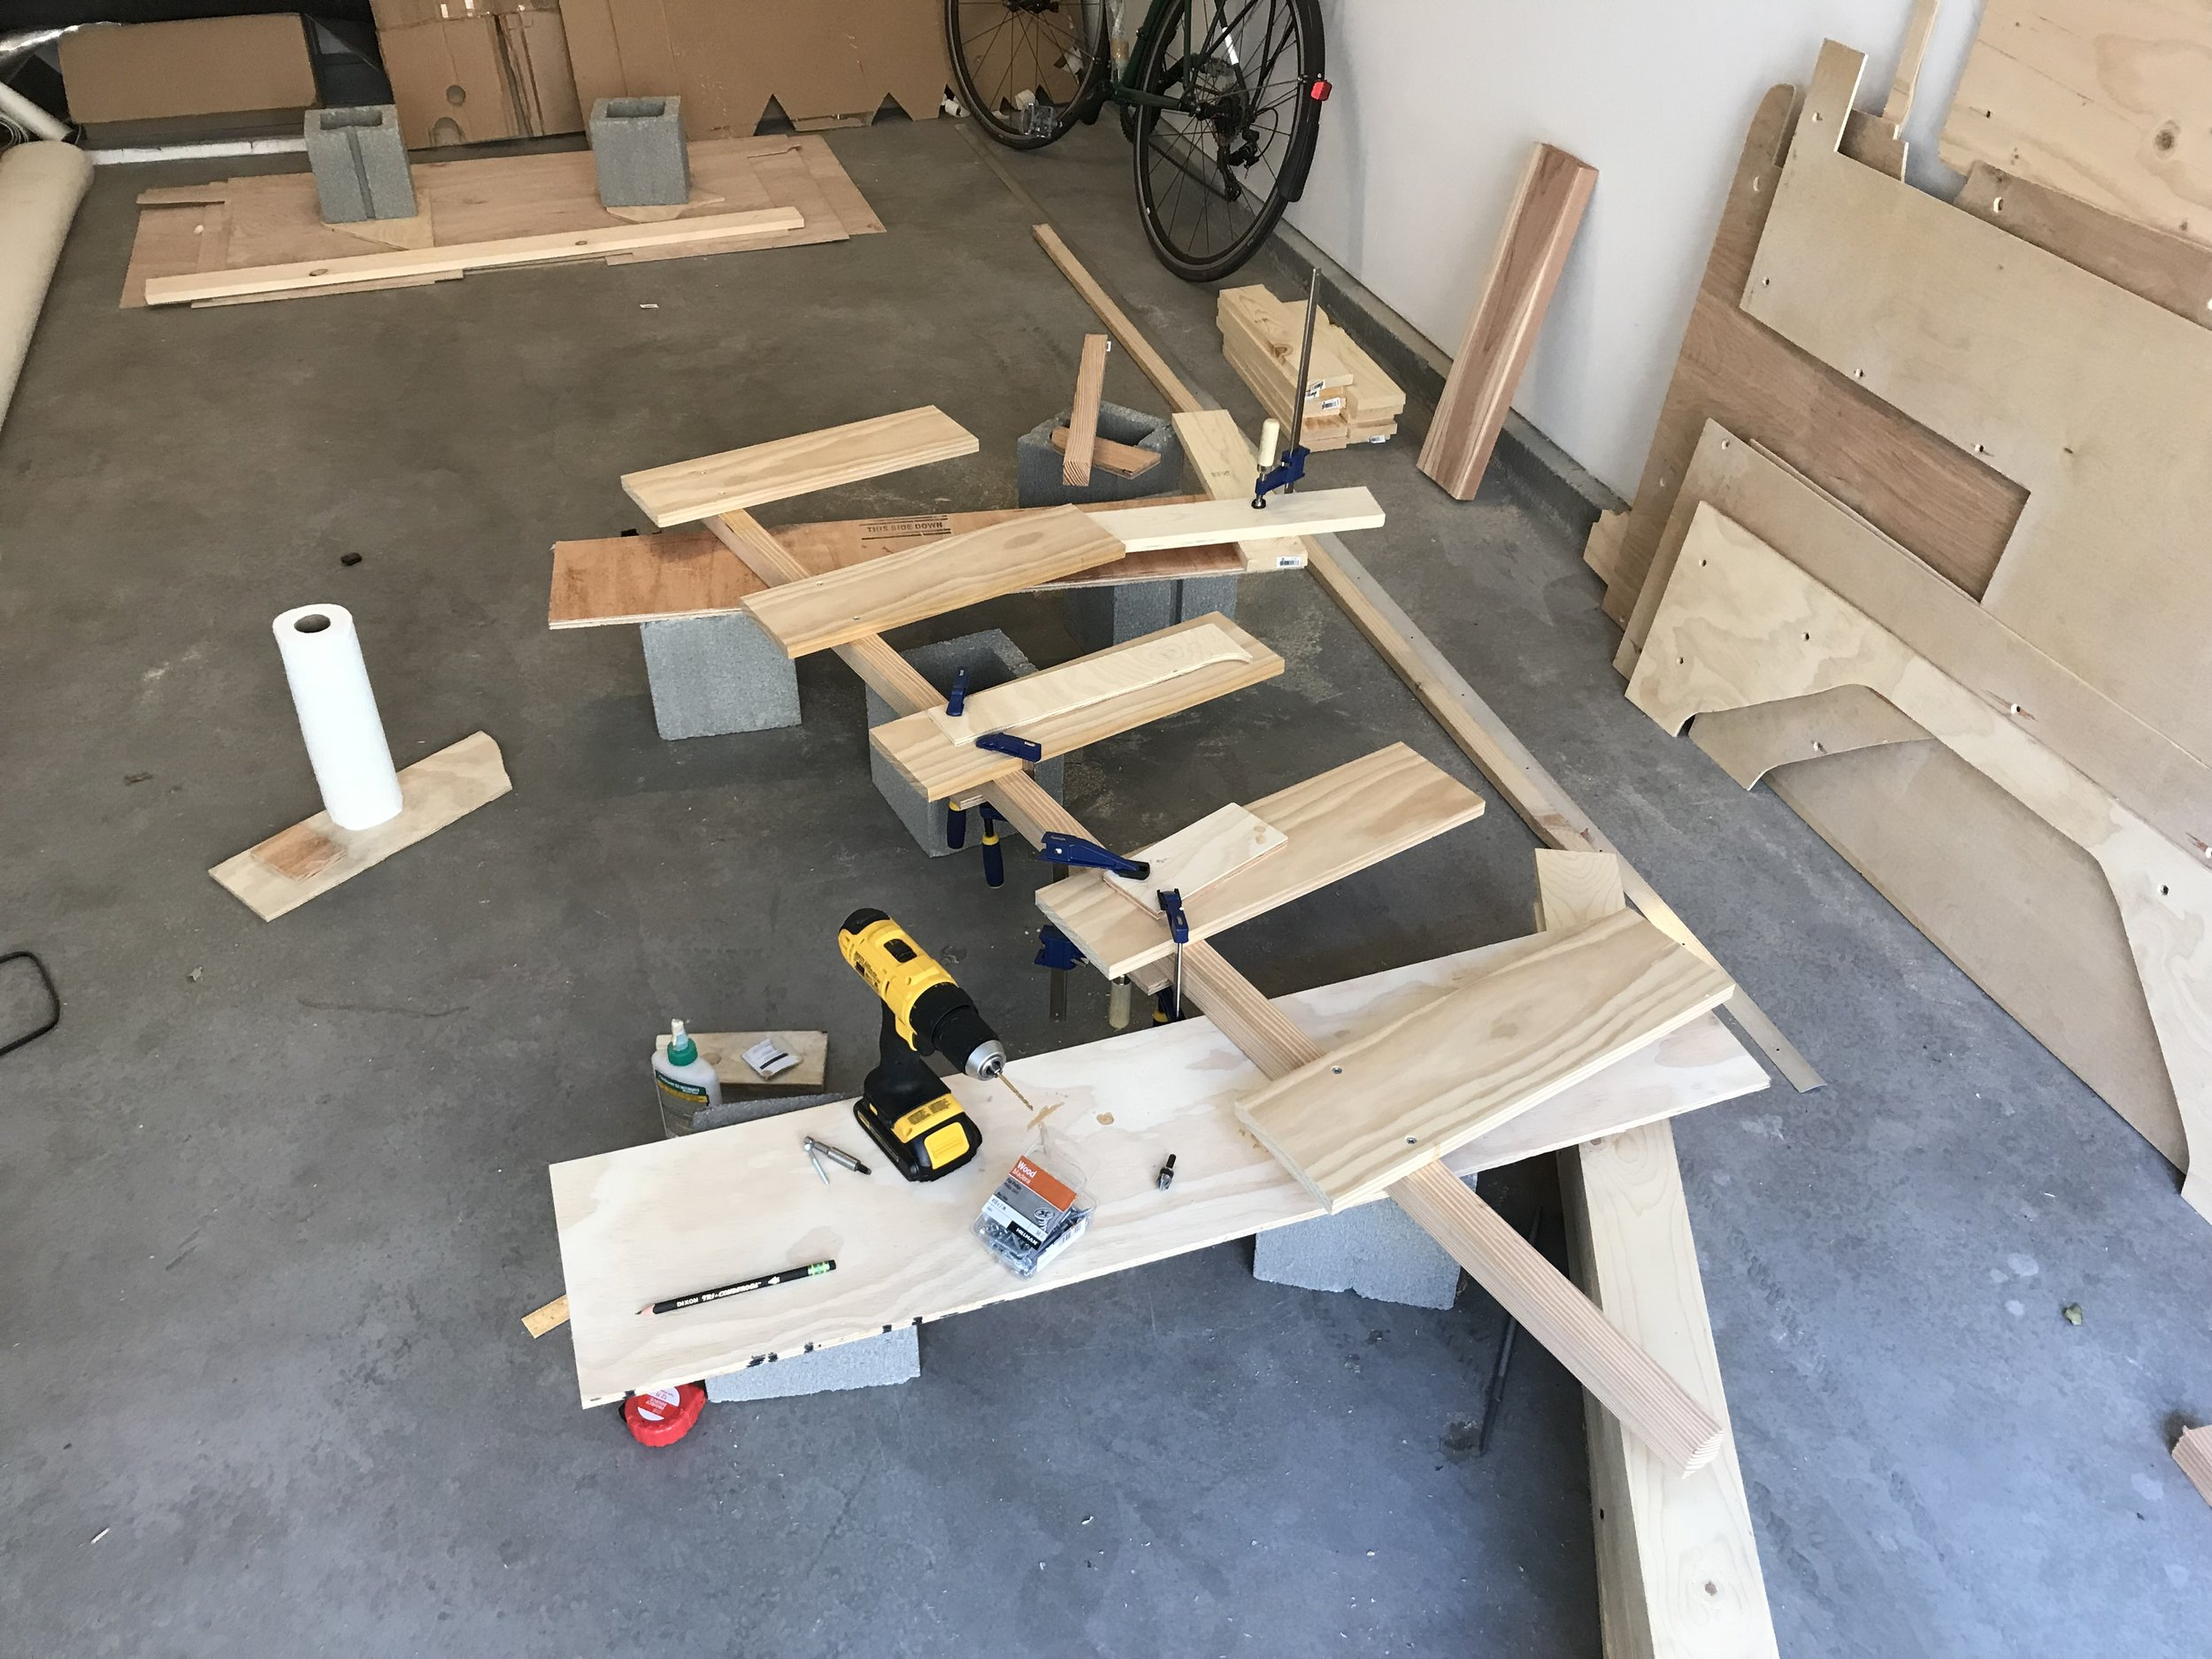 Free-standing support rail under construction